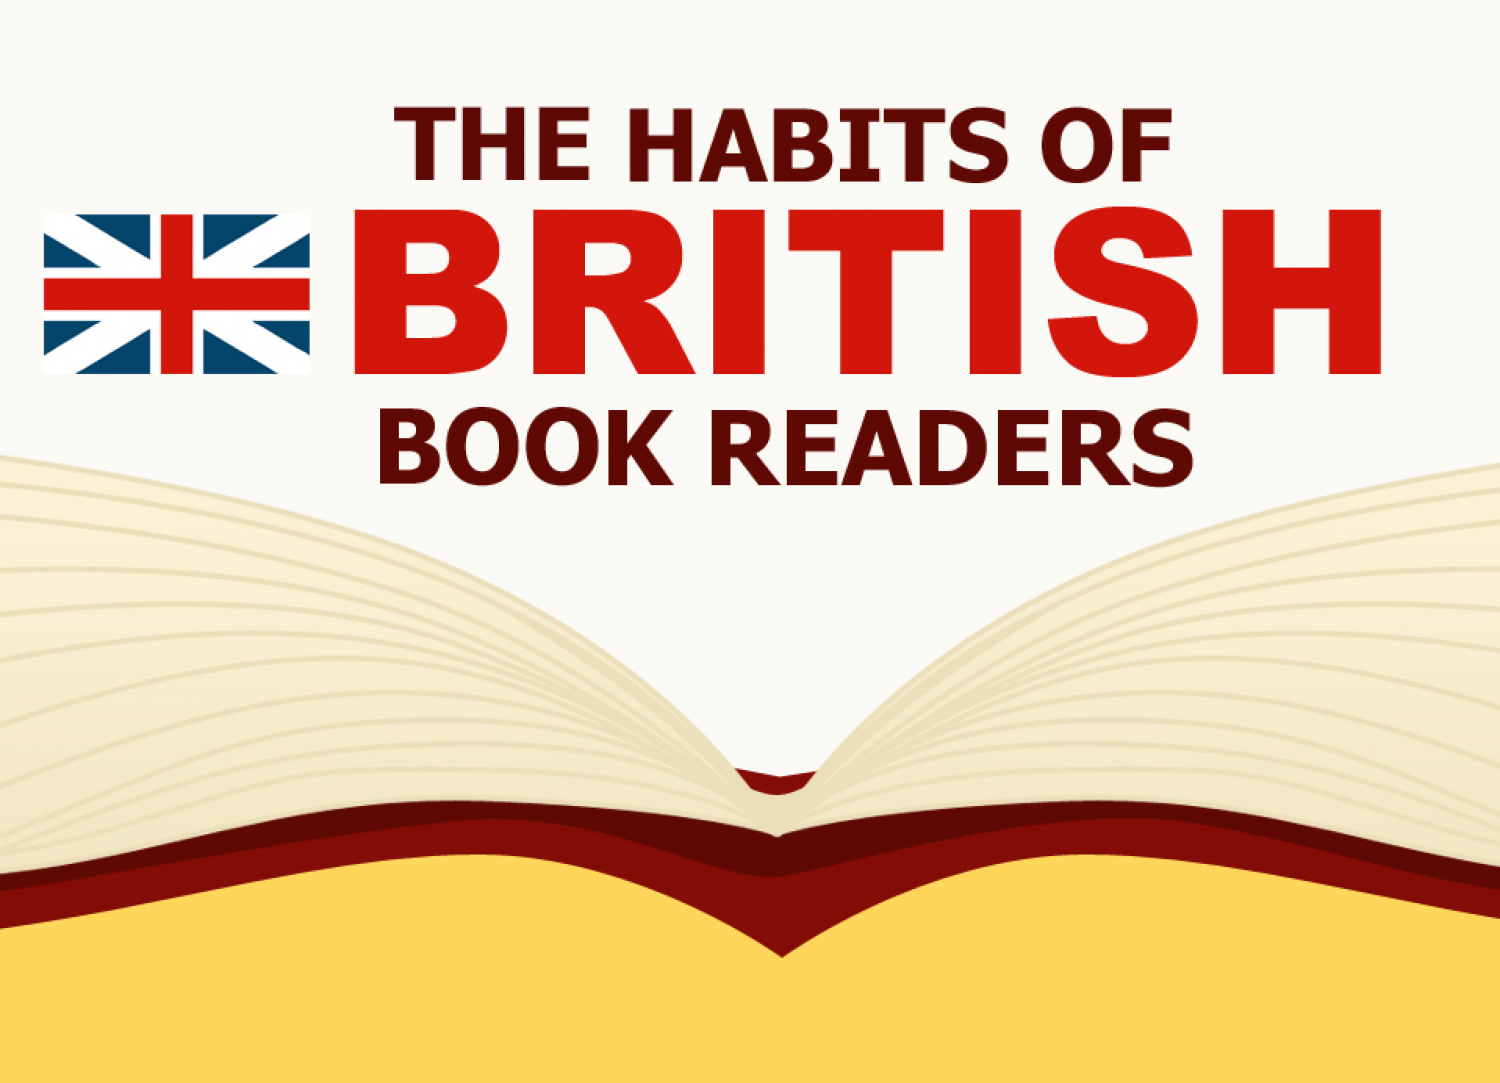 The Habits of British Book Reader Infographic